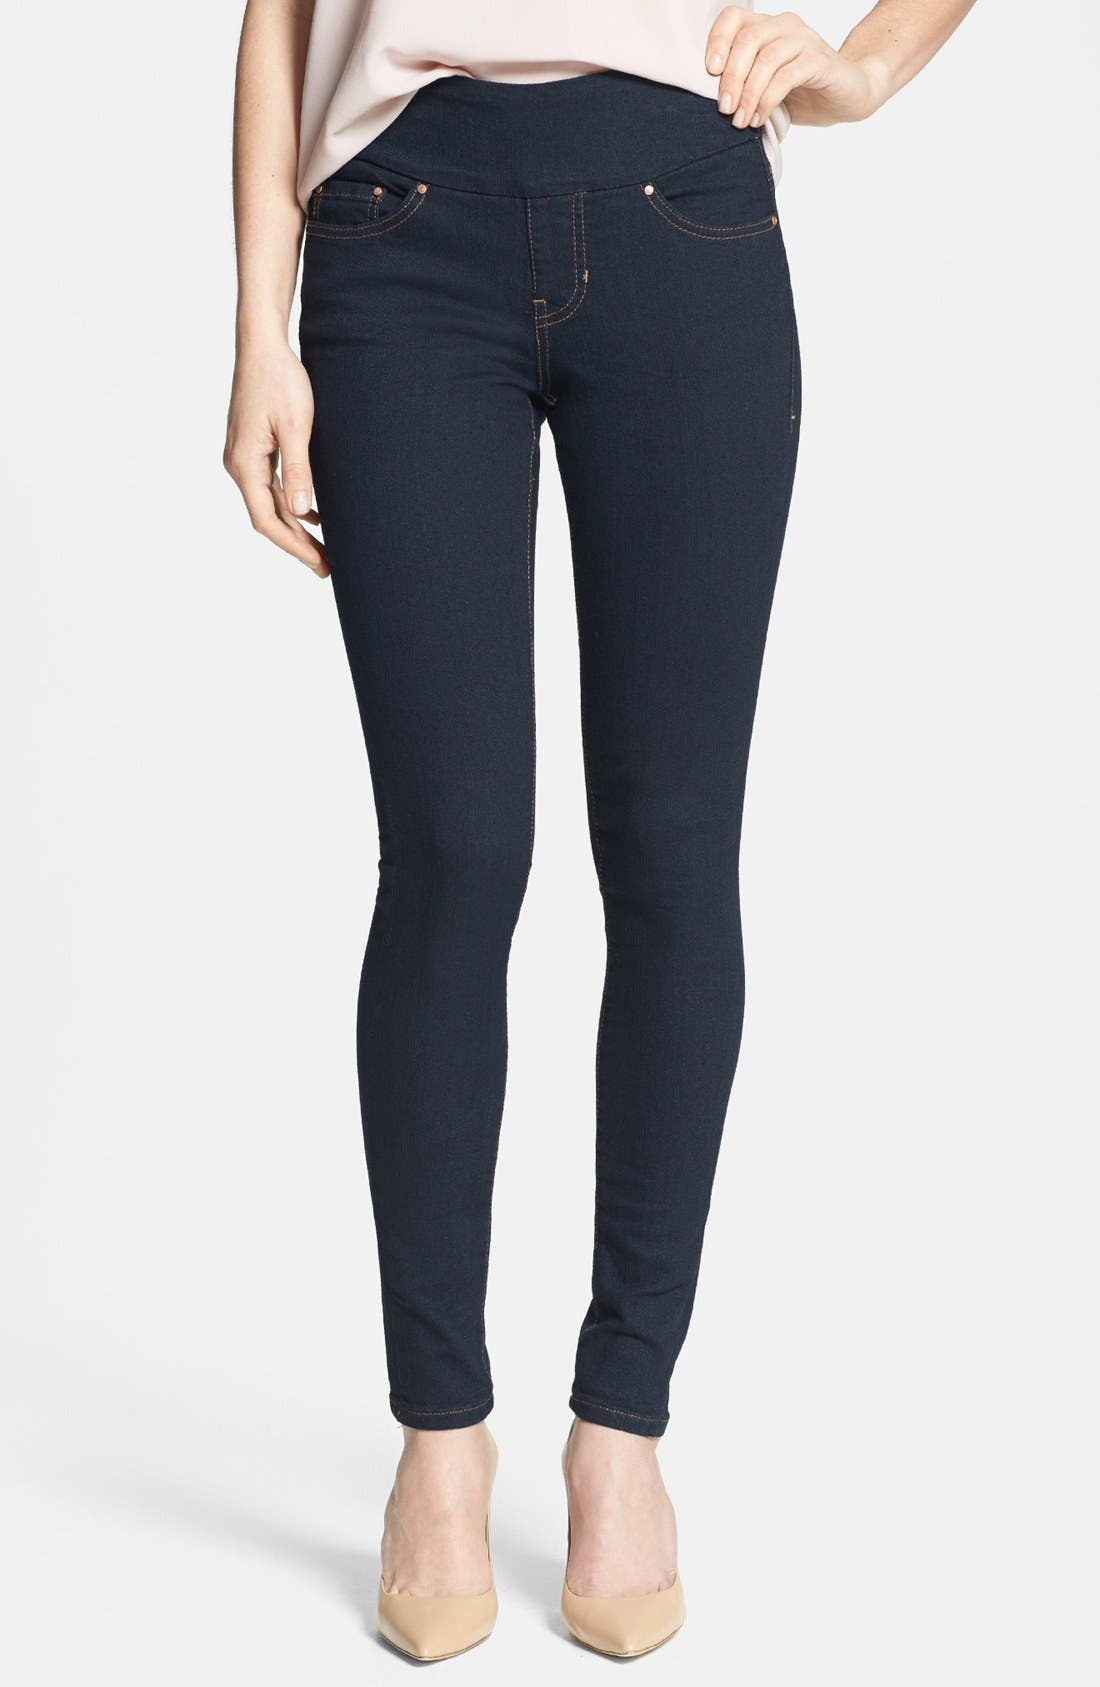 Main Image - Jag Jeans 'Nora' Pull-On Skinny Stretch Jeans (After Midnight) (Regular & Petite)